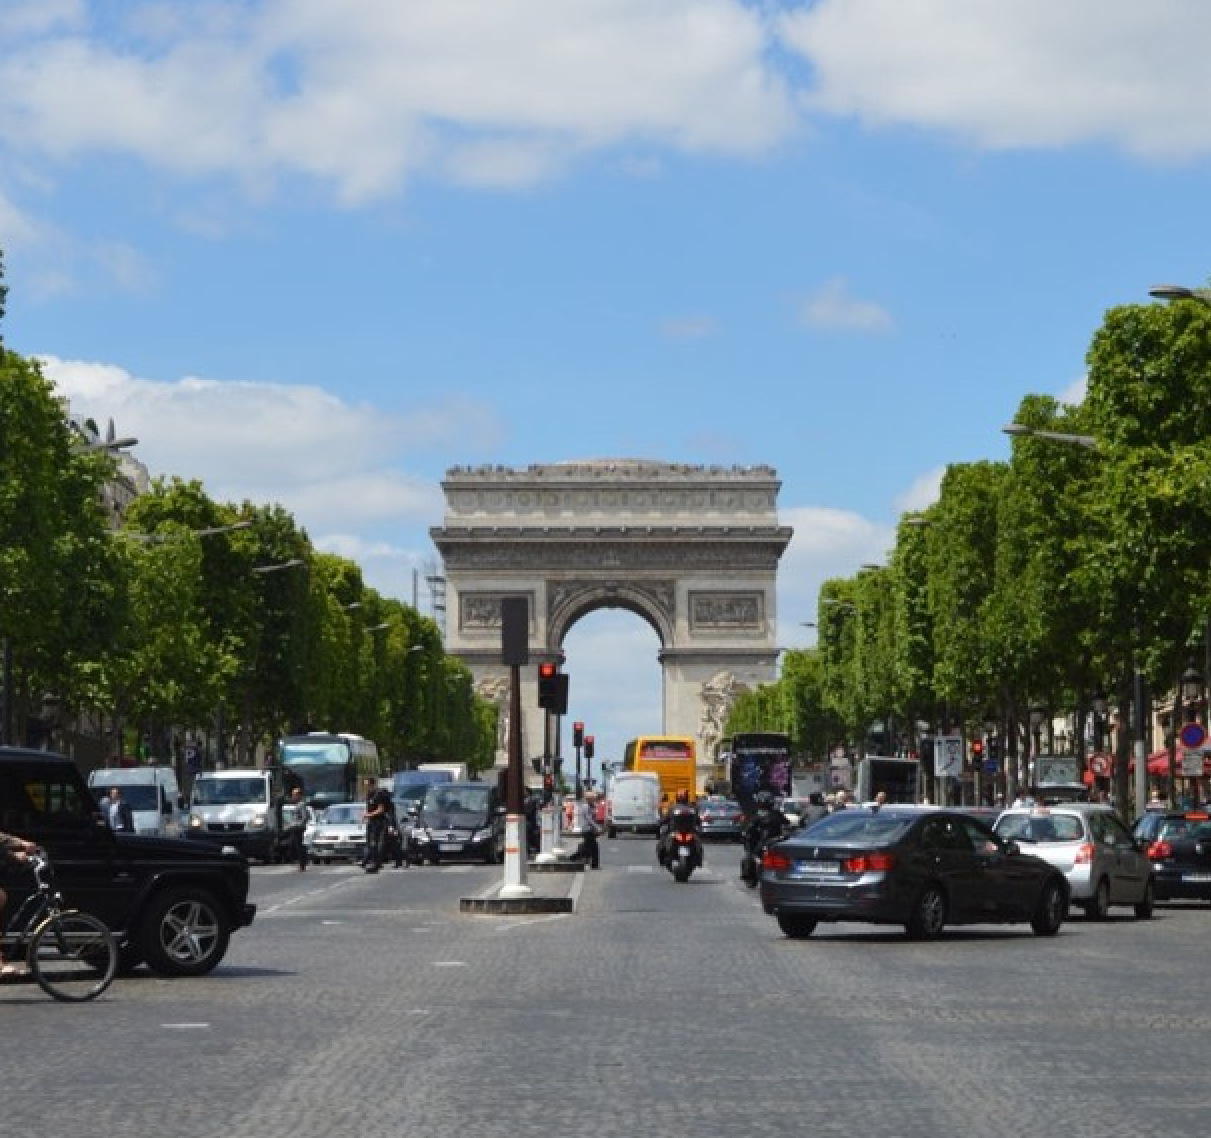 Arc de Triomphe in Paris, France - this article lists 10 amazing things you must not miss in Paris! Have you planned your trip yet? / goseekexplore.com